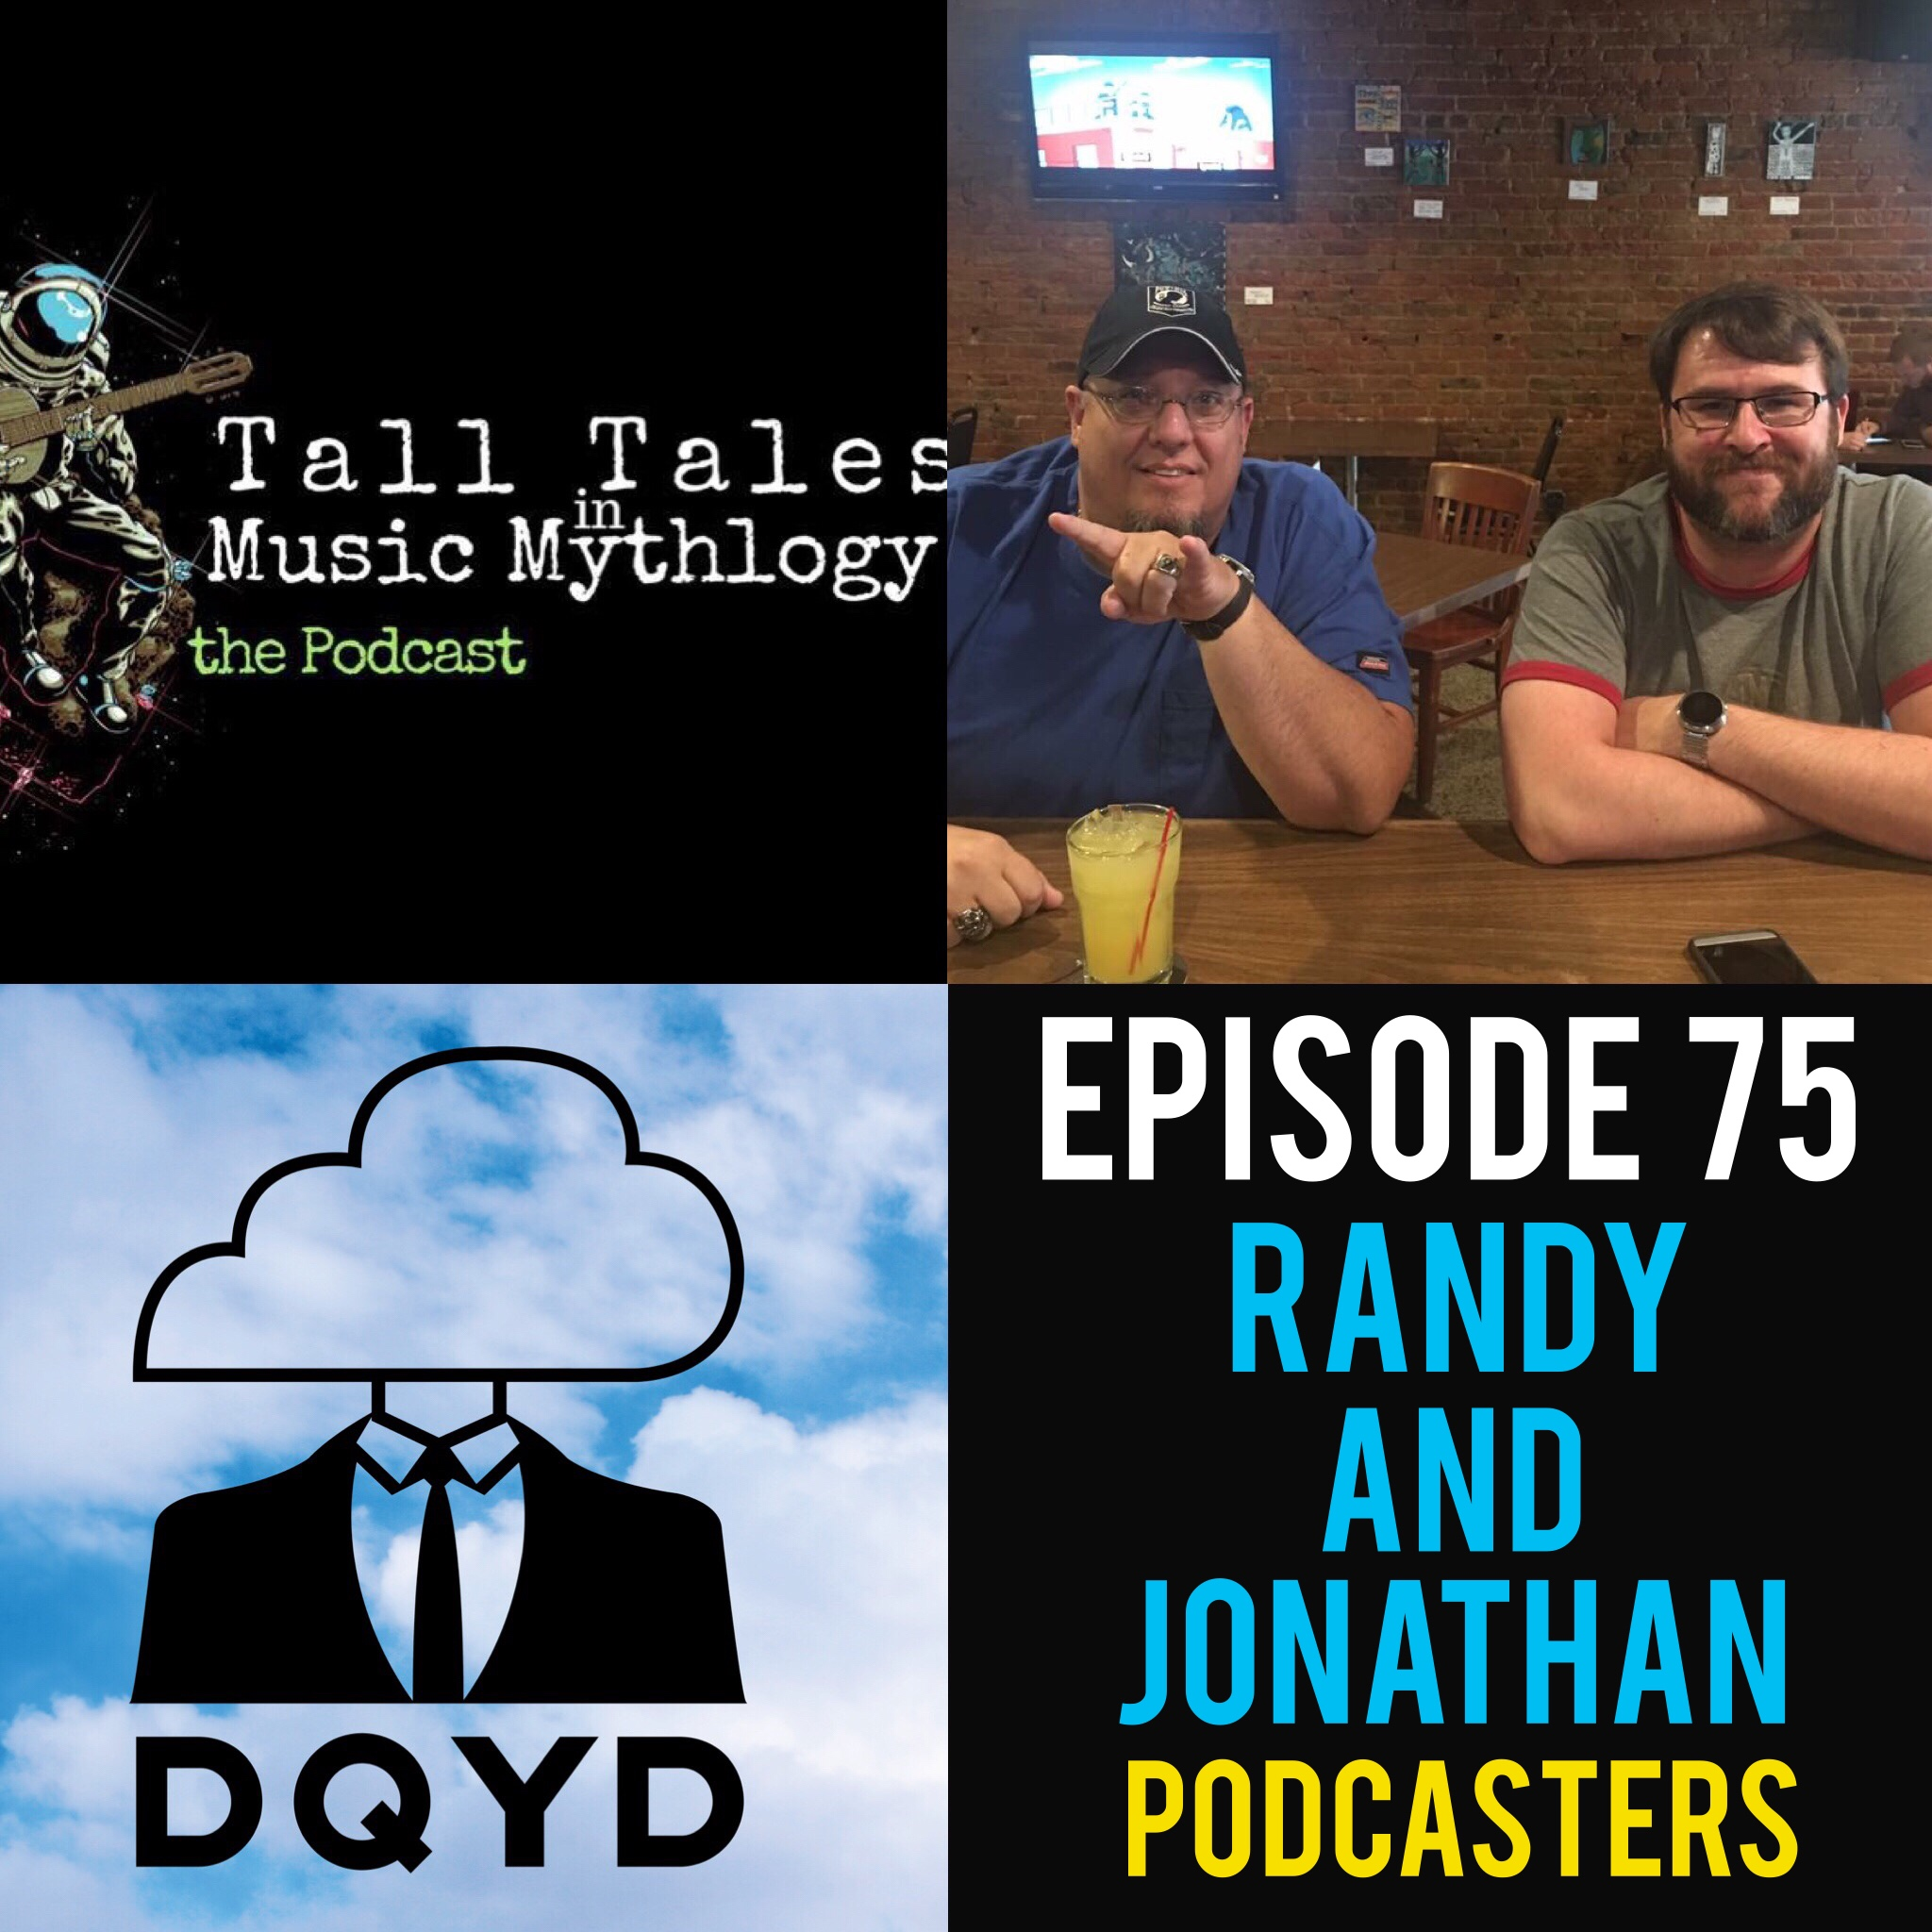 """Episode 75 with Podcasters: Randy and Jonathan of Tall Tales in Music Mythology! With two completely different experiences in the music industry, Jon and Randy combine their stories and passion to create their wonderful podcast Tall Tales in Music Mythology. Discussing fun rumor and myths their podcast is highly entertaining on a weekly basis. Check it out!  https://www.facebook.com/T2M2Podcast/   https://t2m2.podbean.com/   Song of the week is """"My Eyes' from the super talented Northam. Find more of their rad tunes by visiting: https://www.facebook.com/NorthamMusic/"""